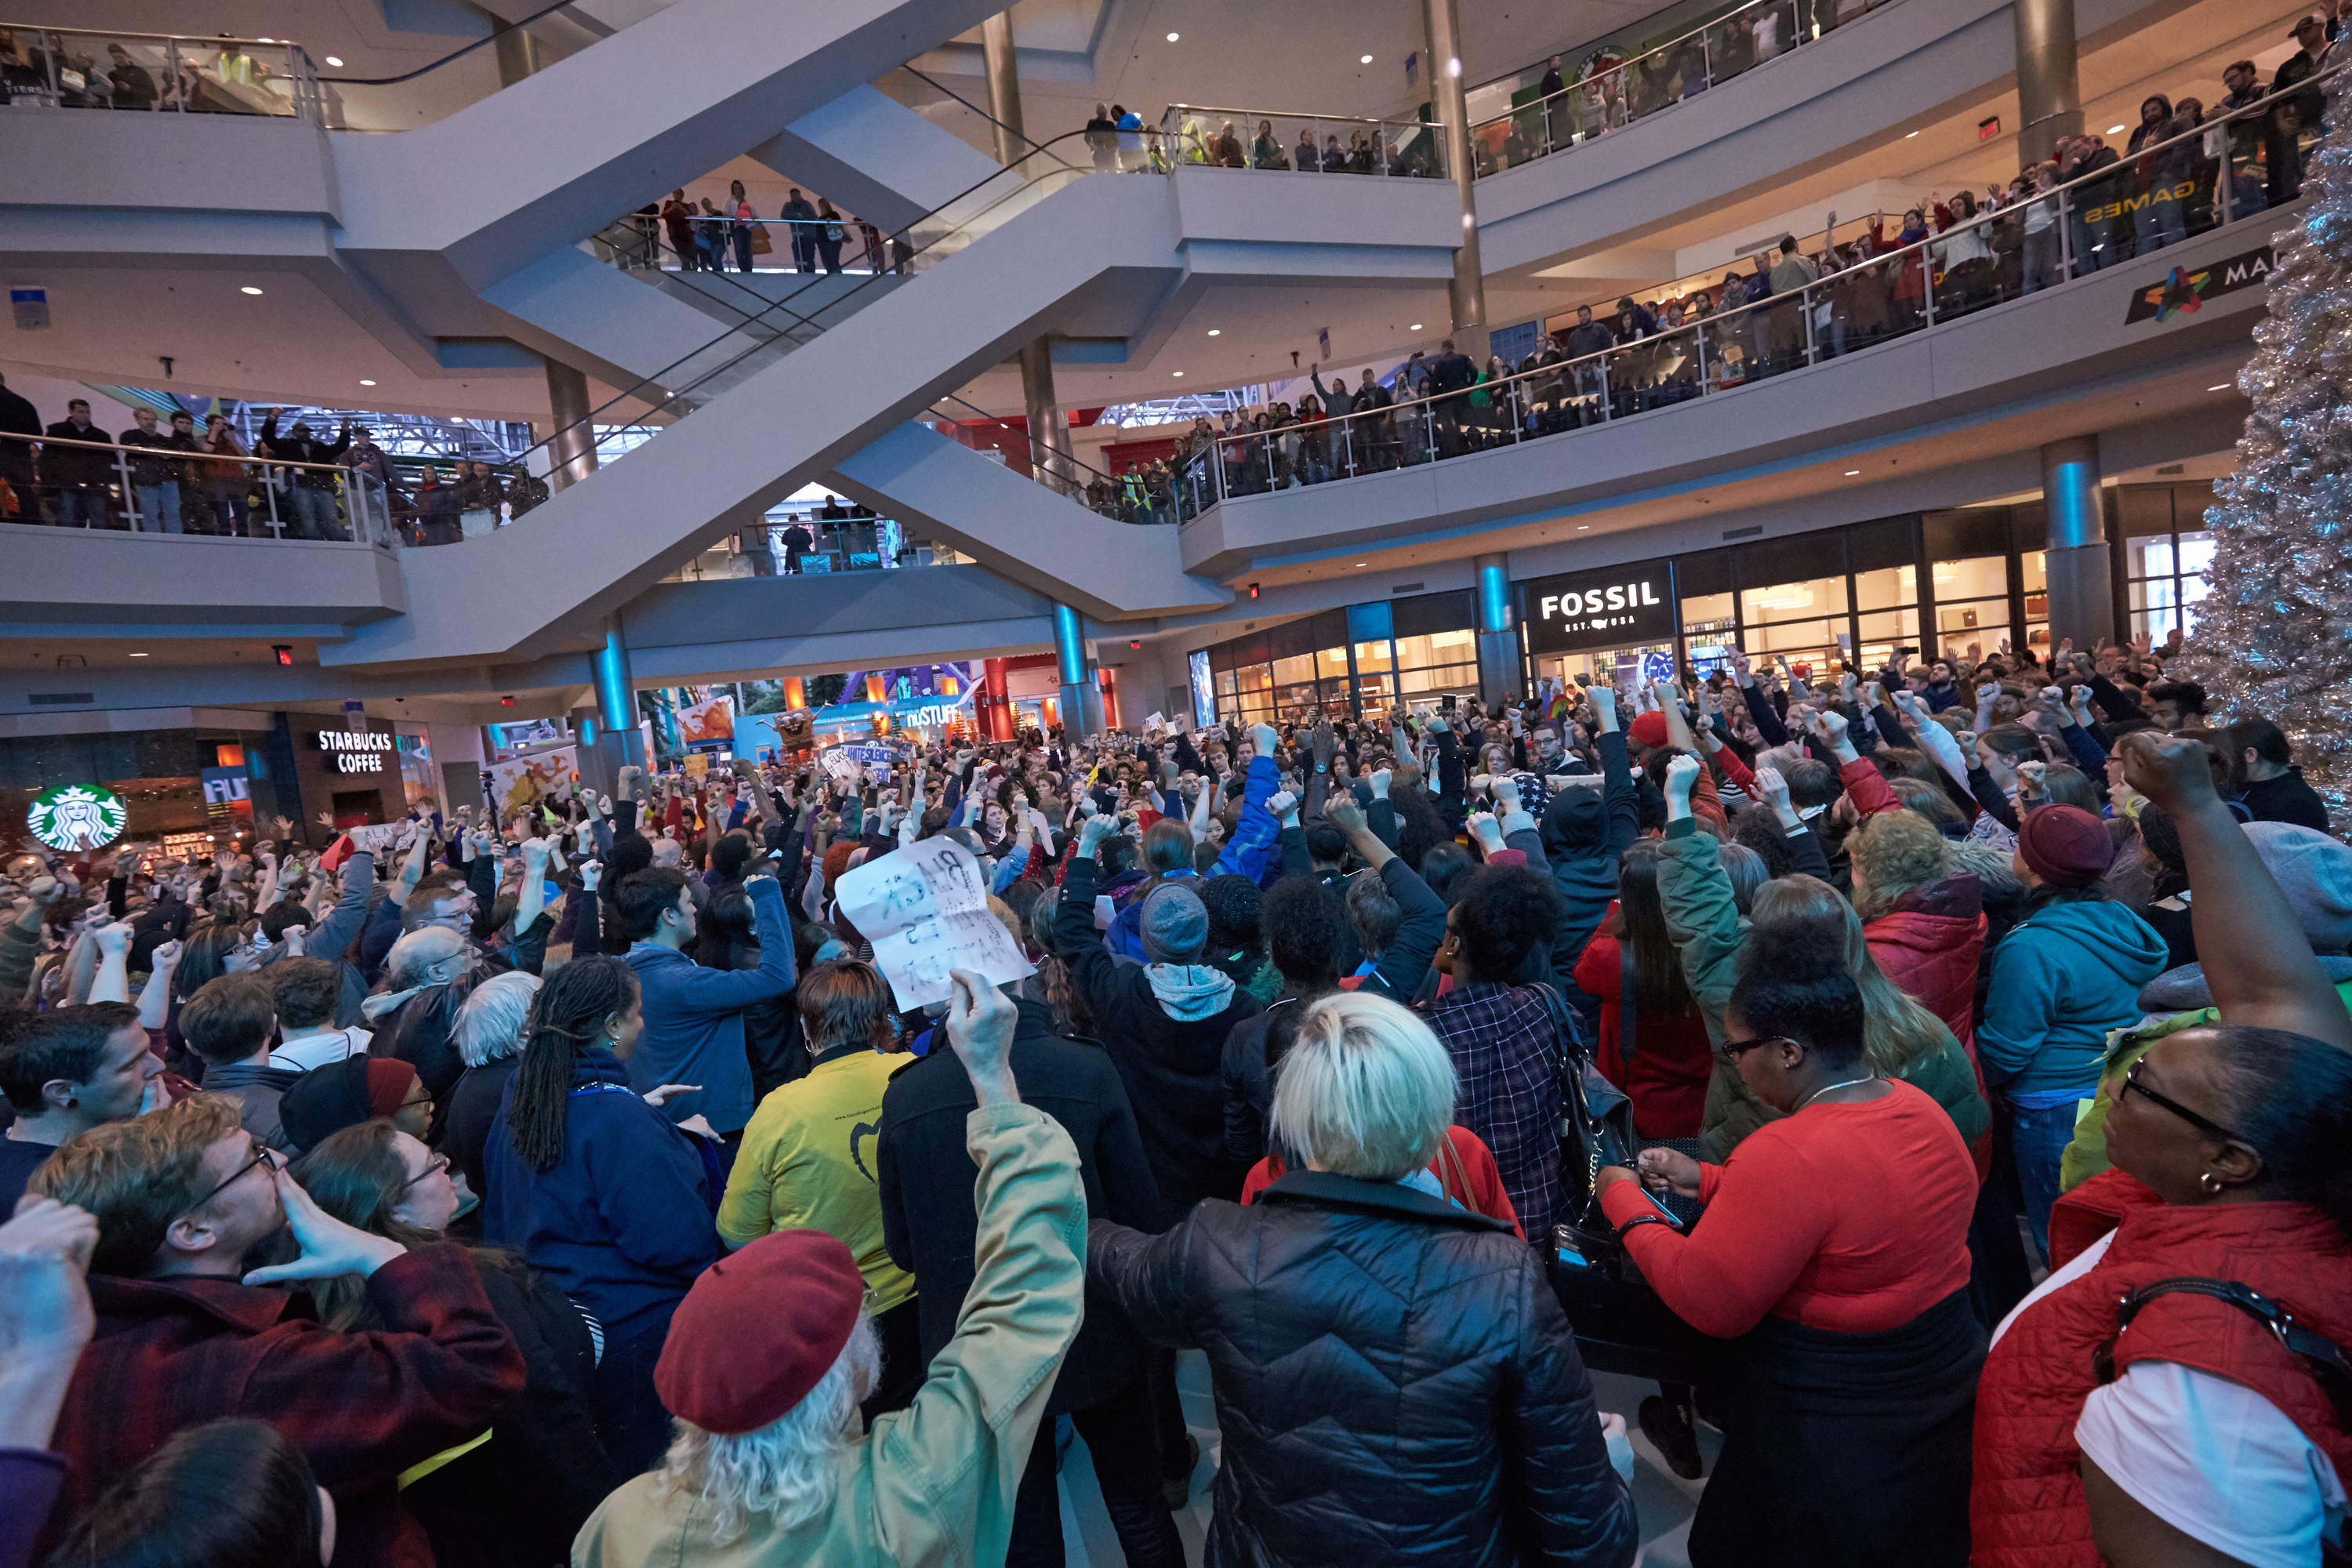 Thousands of protesters from the group  Black Lives Matter  disrupt holiday shoppers on Dec. 20, 2014 at Mall of America in Bloomington, Minnesota.